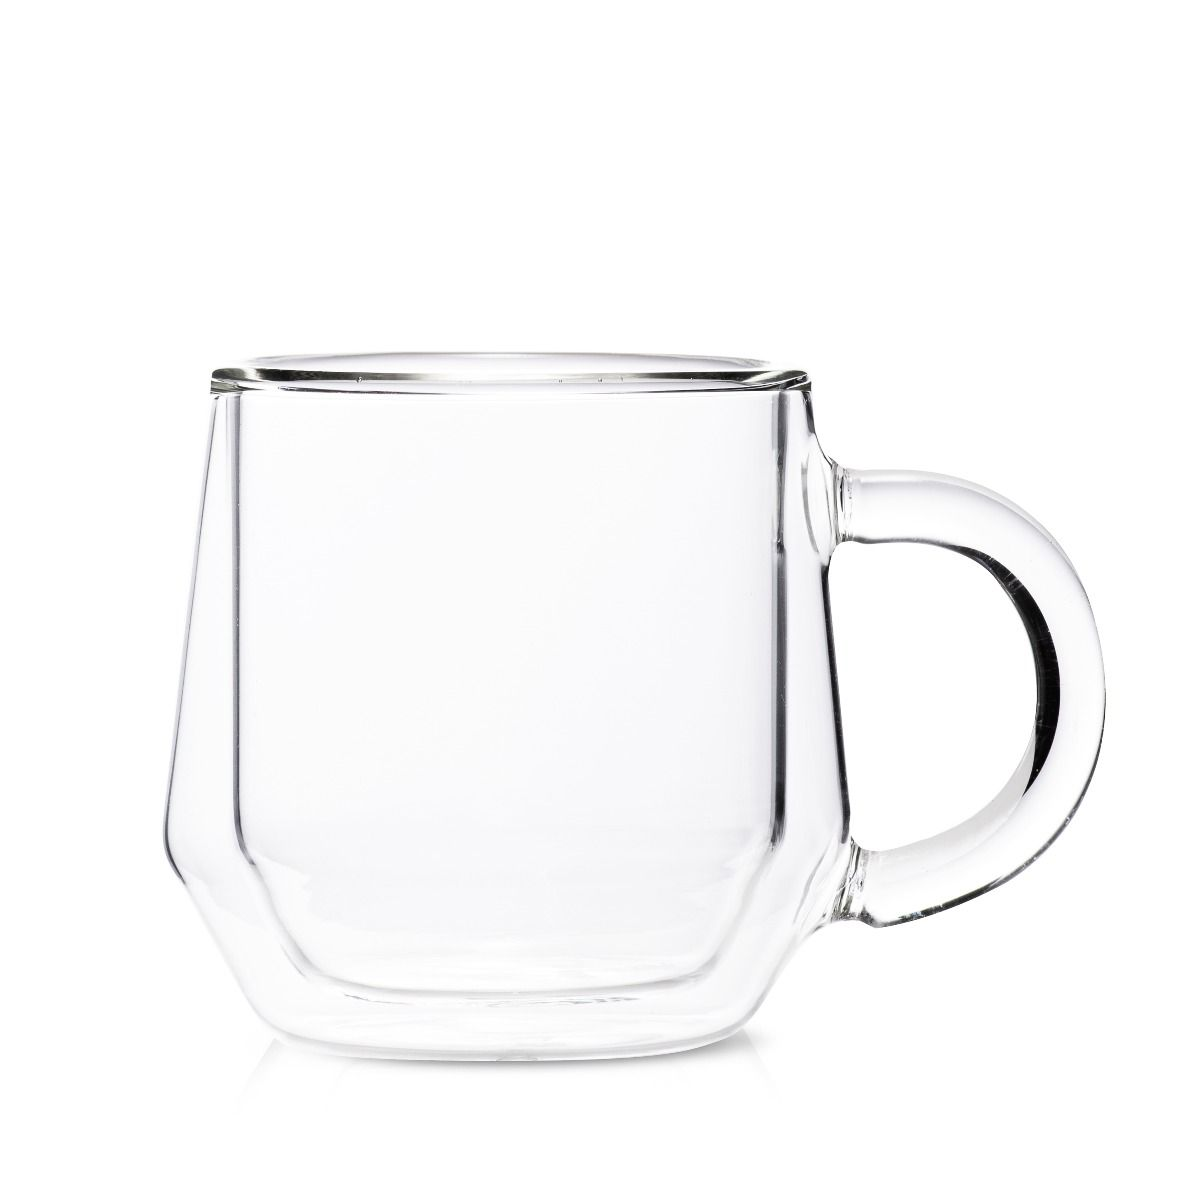 Hearth Set of 2 Latte, 8OZ (240ML), Double Wall Glass